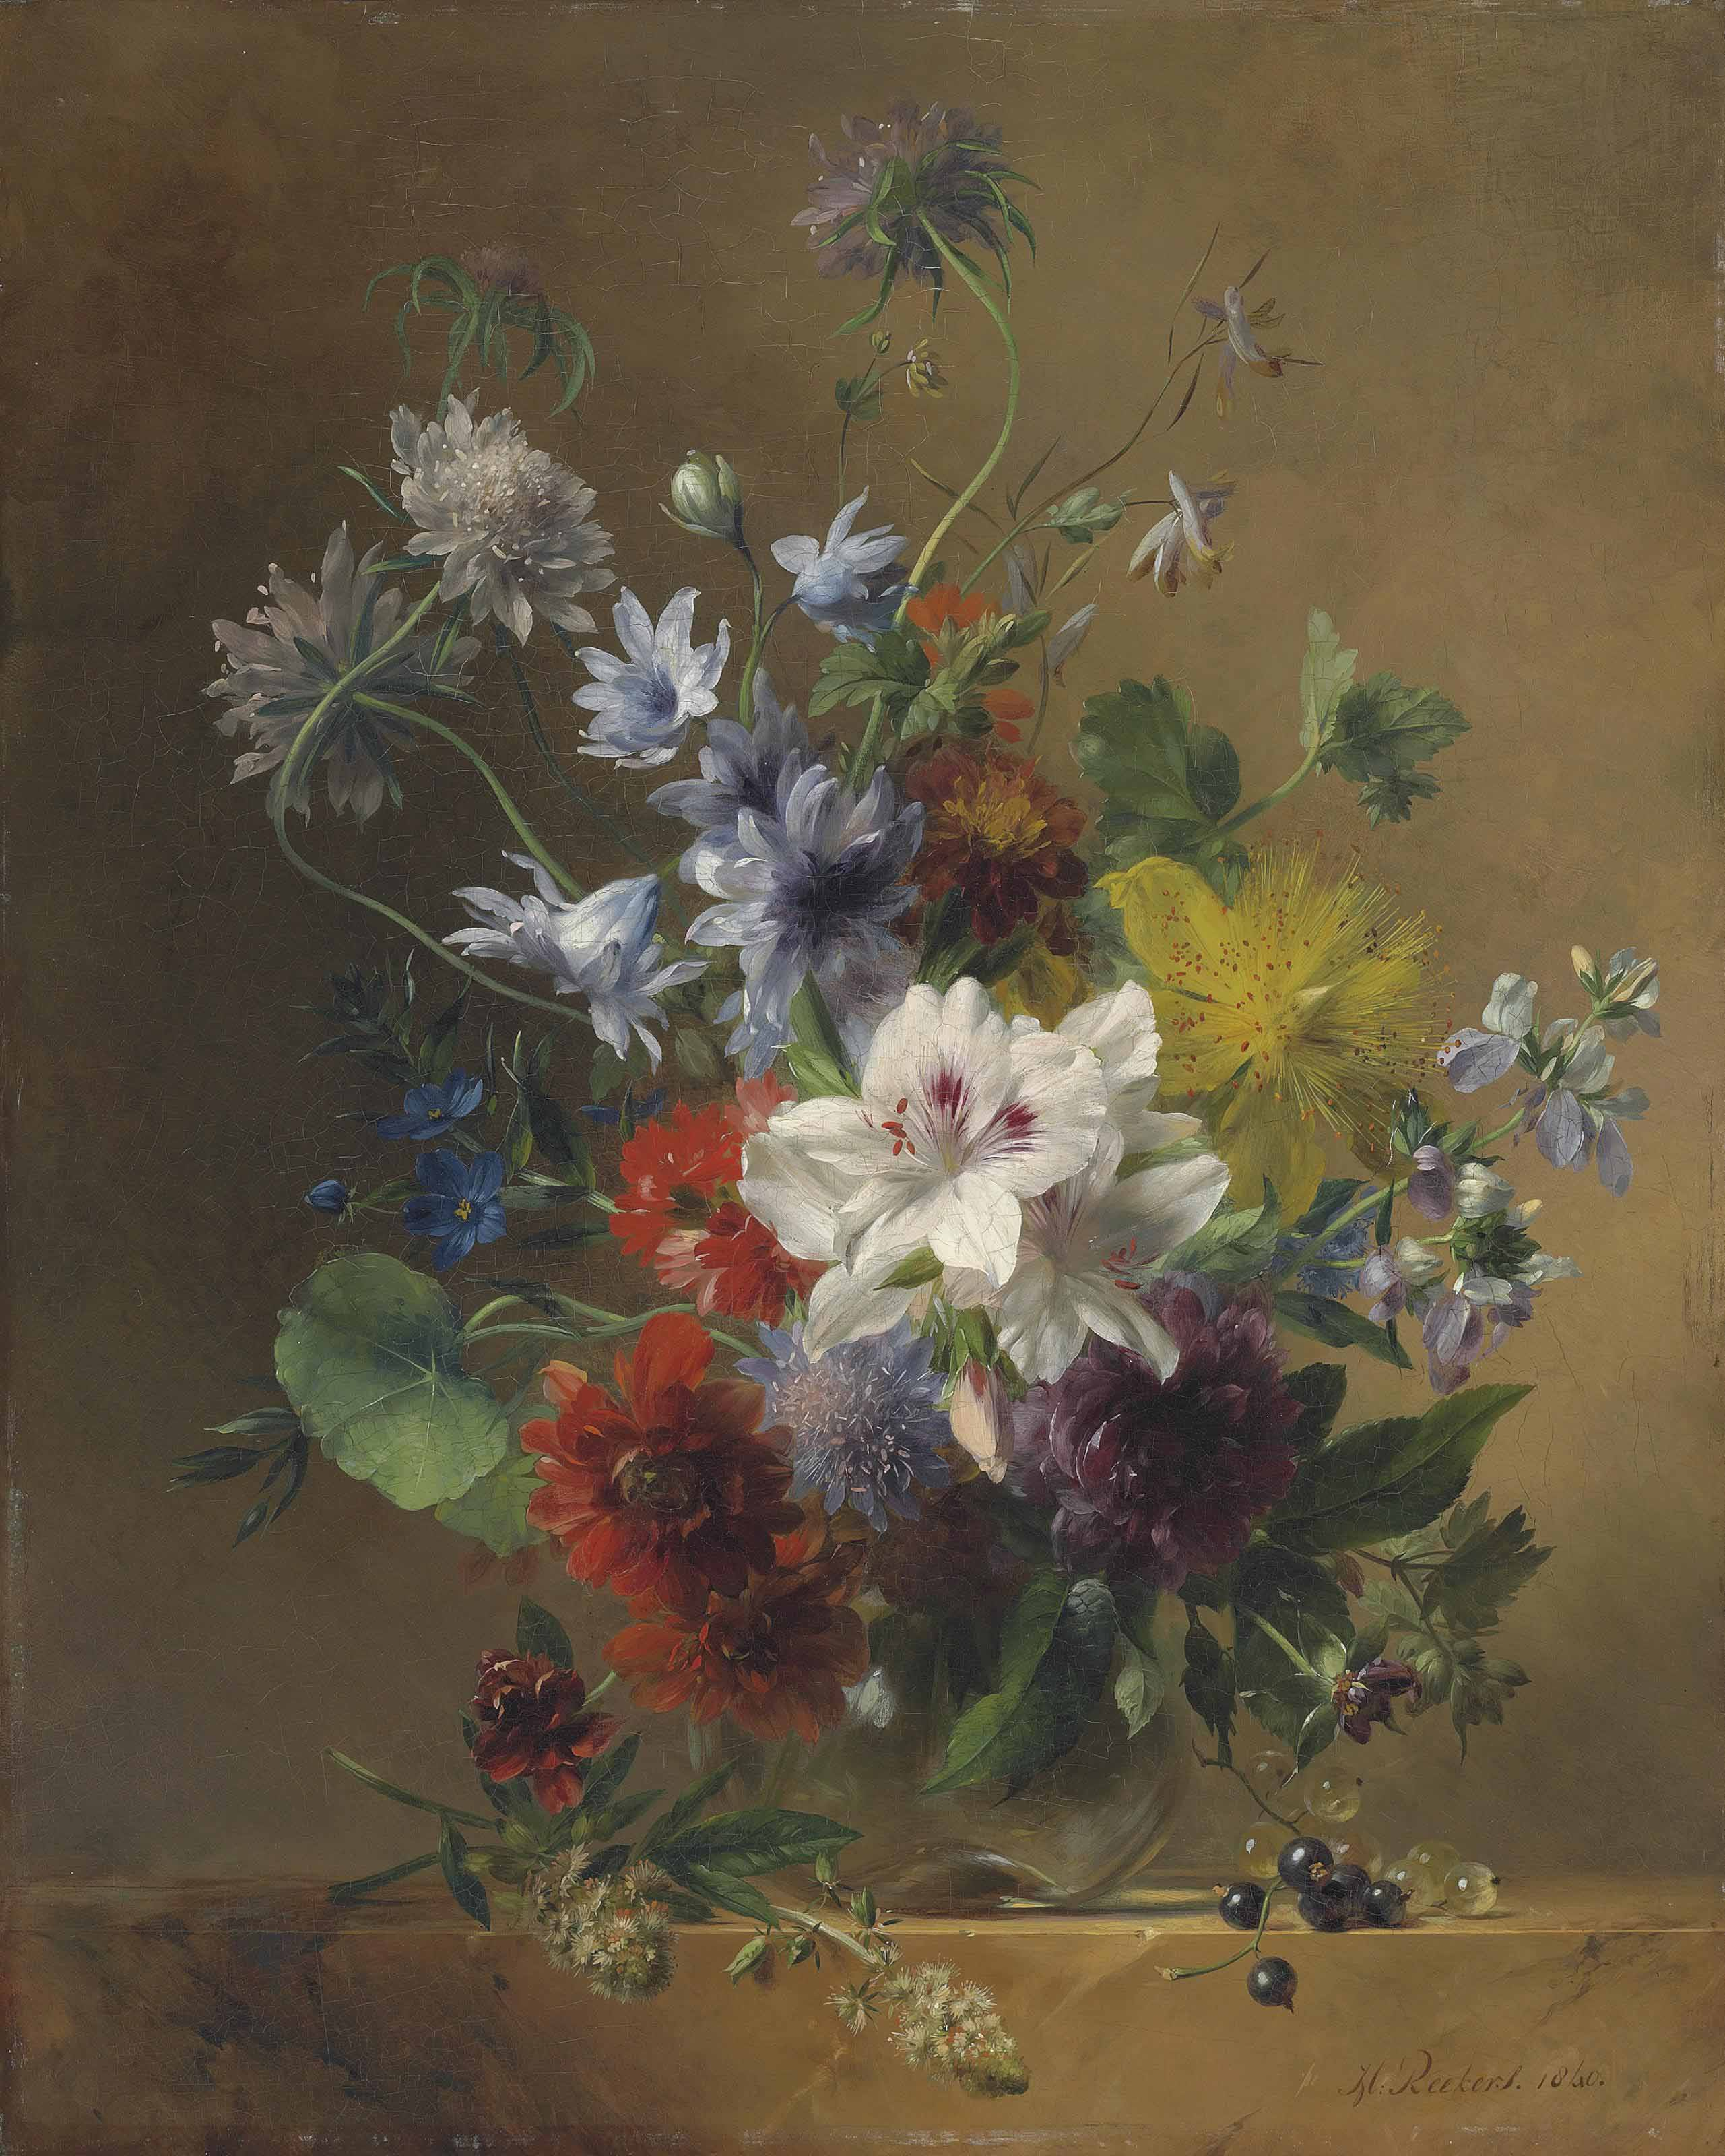 Summer flowers in a glass vase on a stone ledge